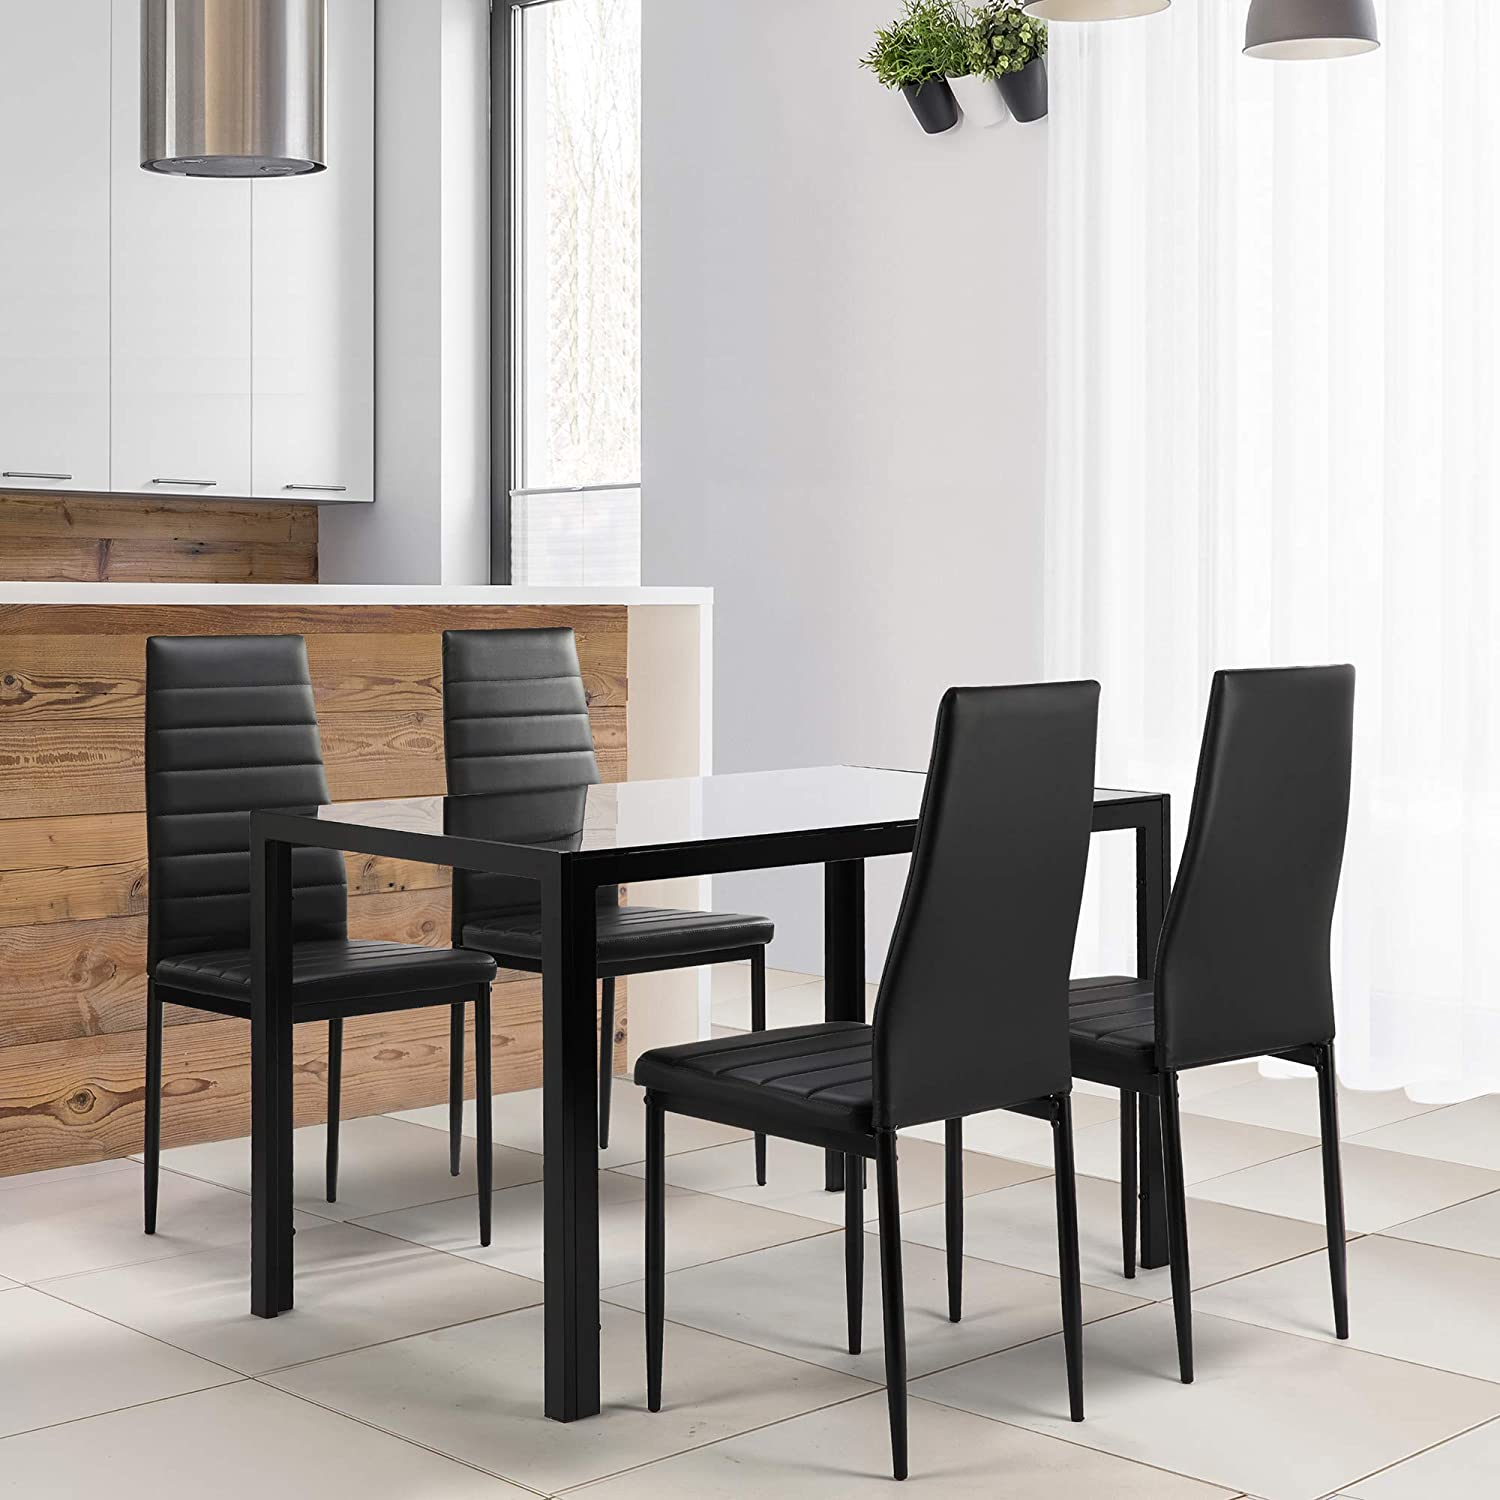 Dining Table Set, Dining Room Table Set, Dinner Table Dinette Sets for  Small Spaces Dinning Table with Chairs Set of 9 Kitchen Dining Table Set  for ...